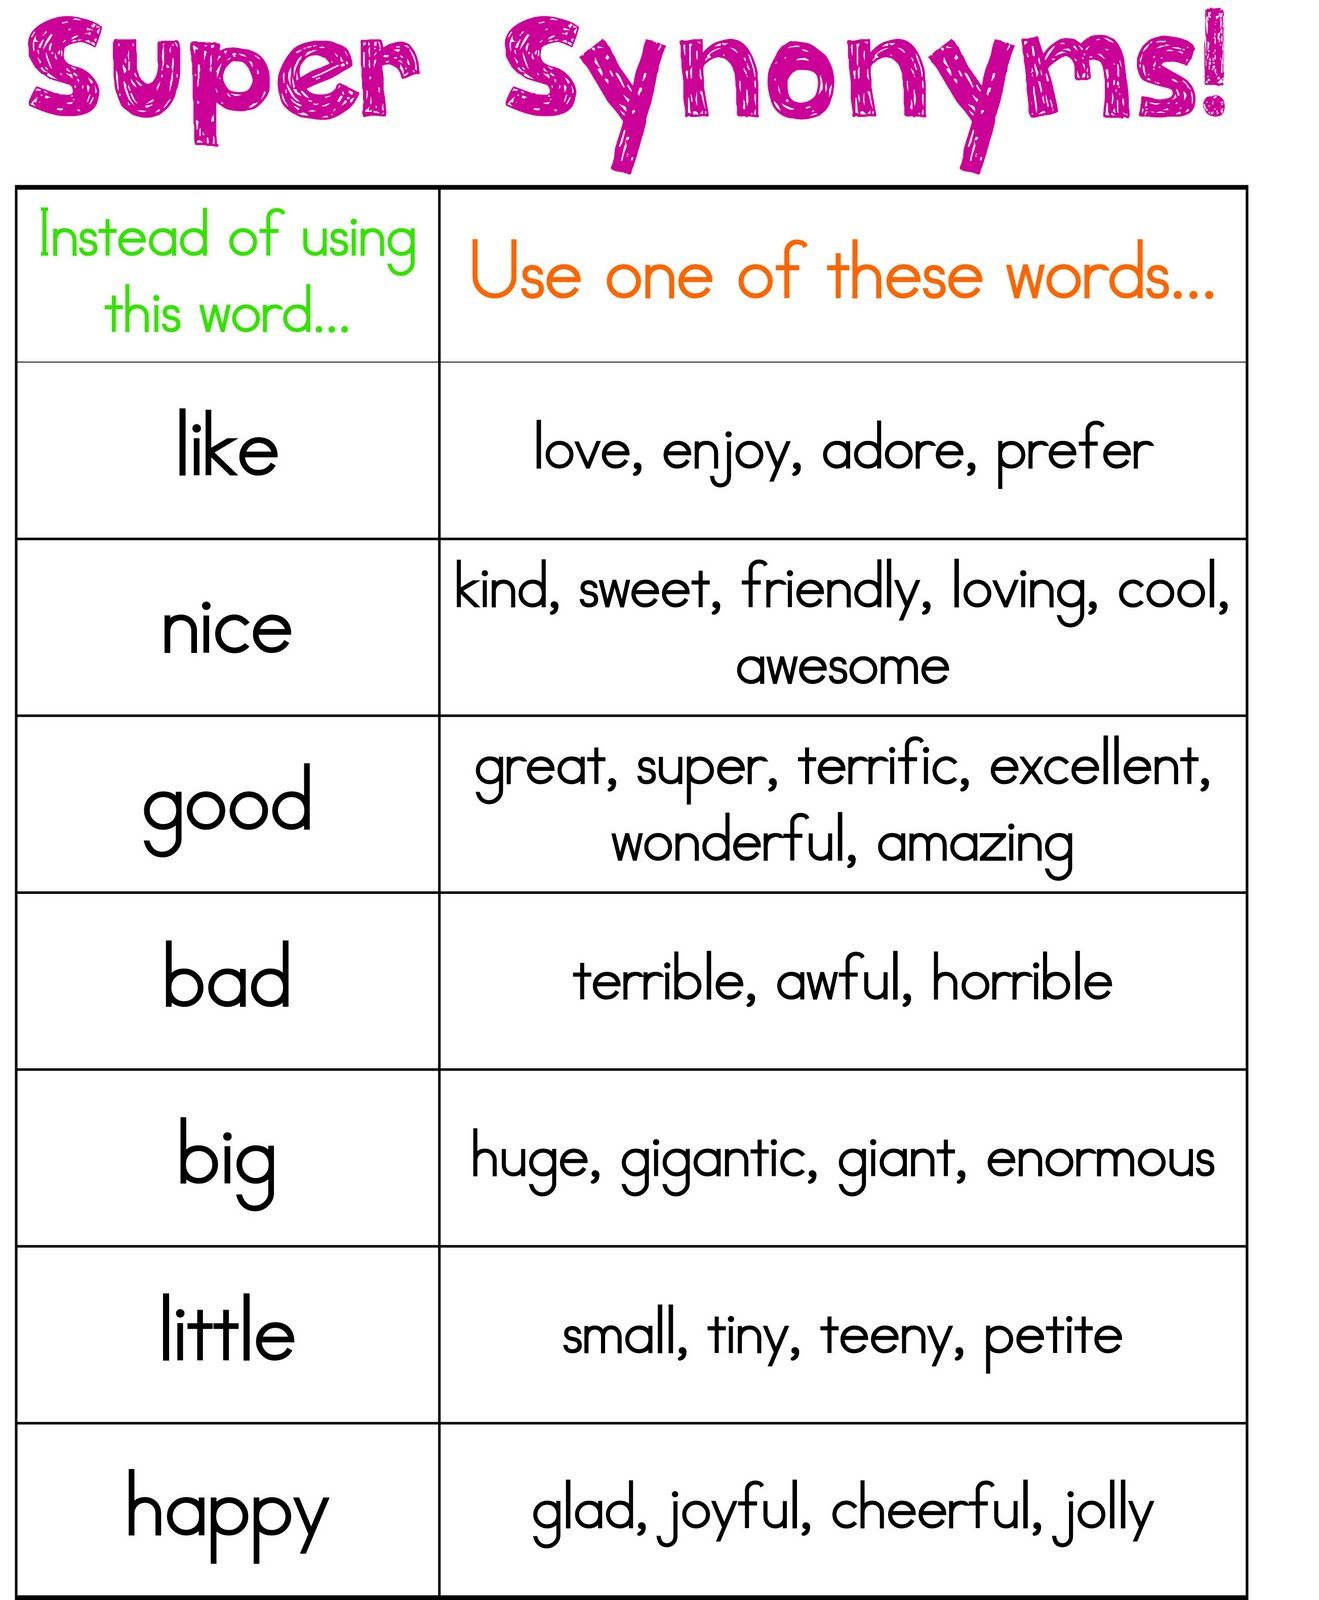 Instructional Chart: This chart can be placed in the classroom writing center to give students synonyms to replace simple words.